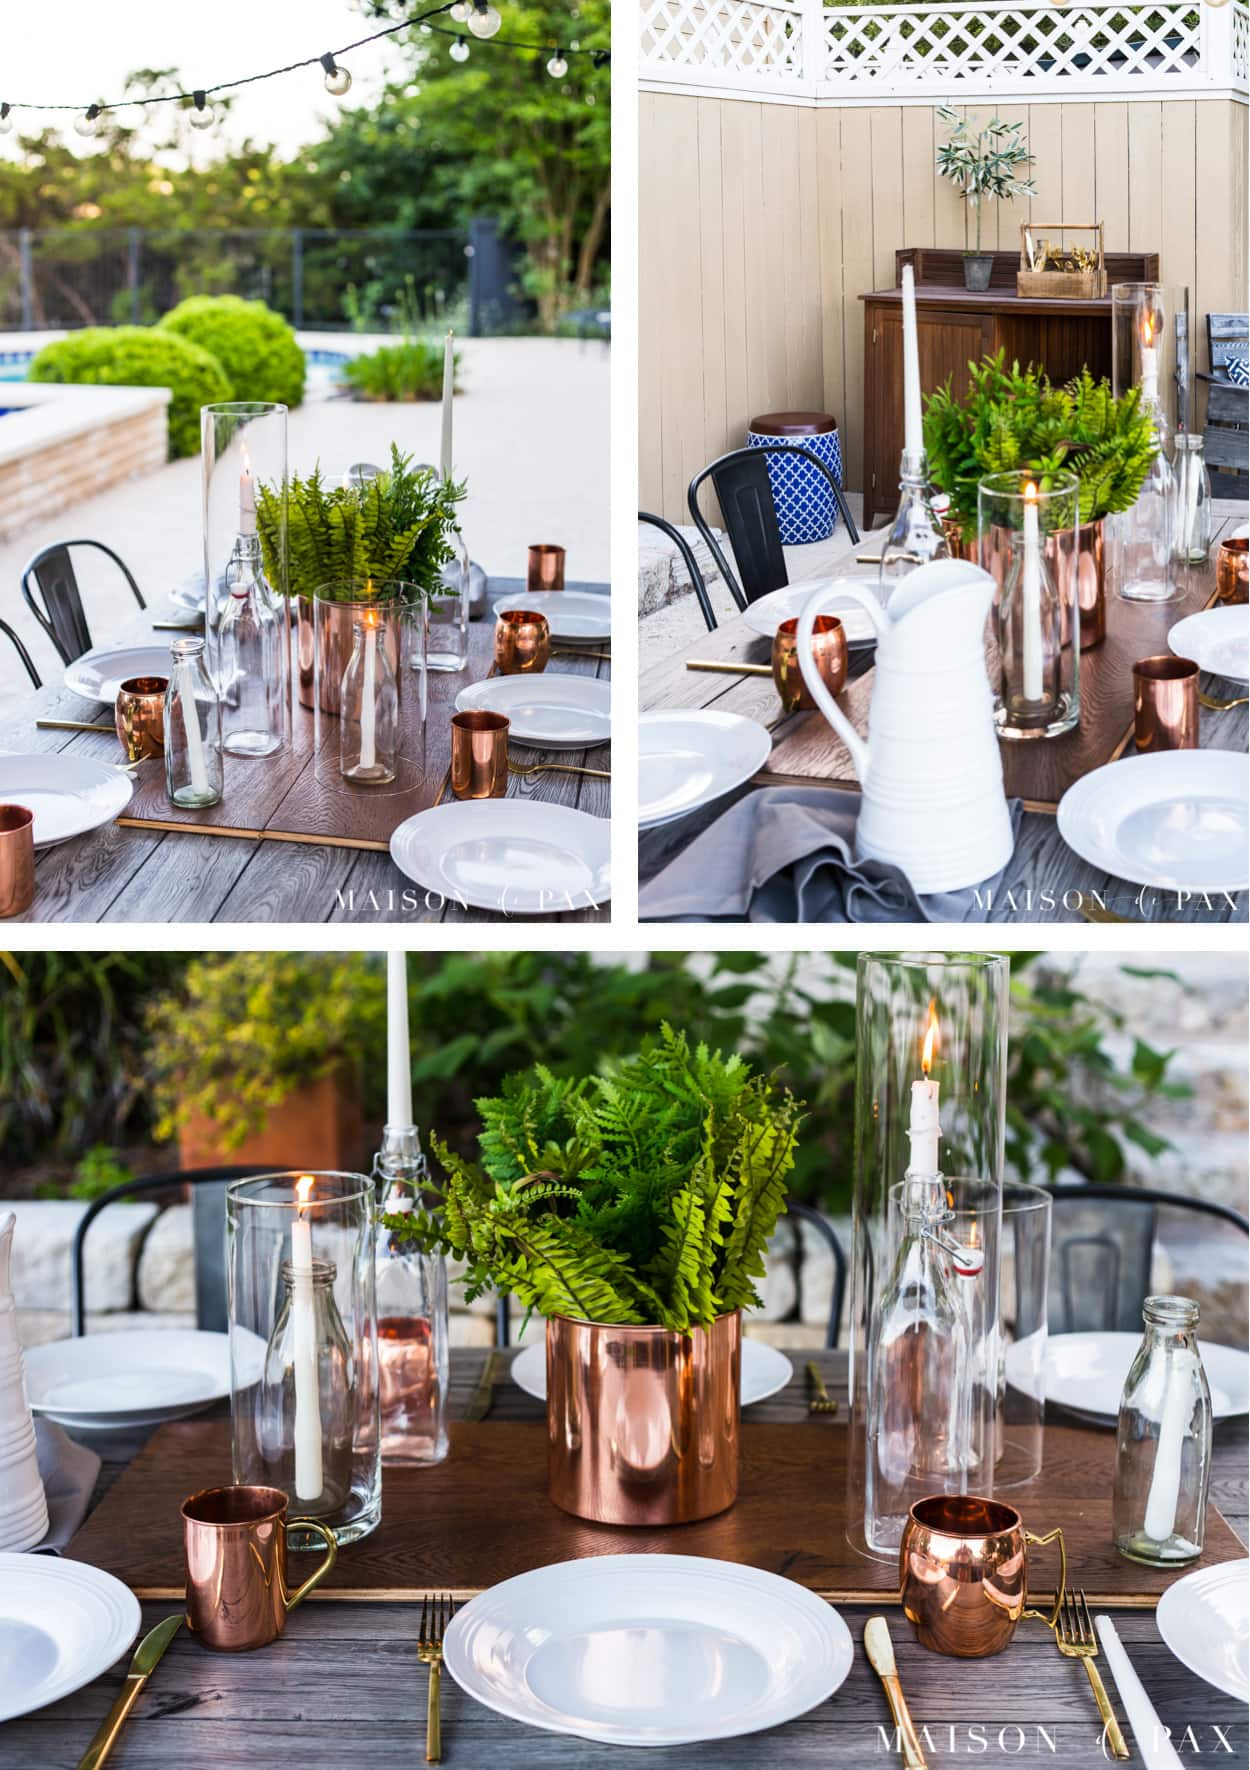 fern and succulent centerpiece: a perfect idea for an outdoor summer table! See more outdoor summer entertaining ideas. #outdoordining #outdoorentertaining #summer #summerentertaining